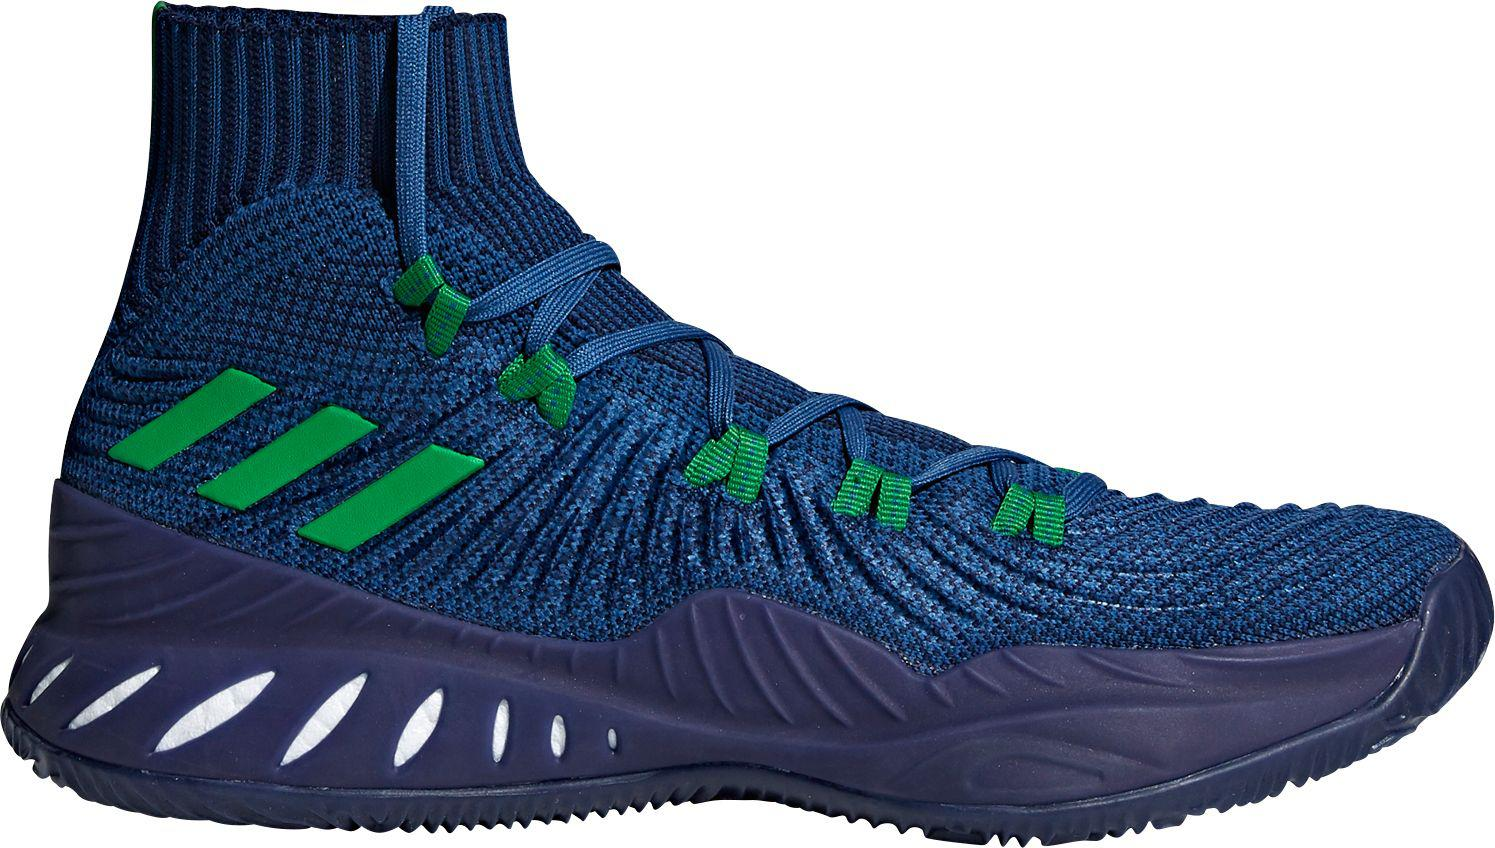 e320337f706 ... amazon Lyst - Adidas Crazy Explosive 2017 Pk Basketball Shoes in Blue  for Men 3ce2e 43f77 ...